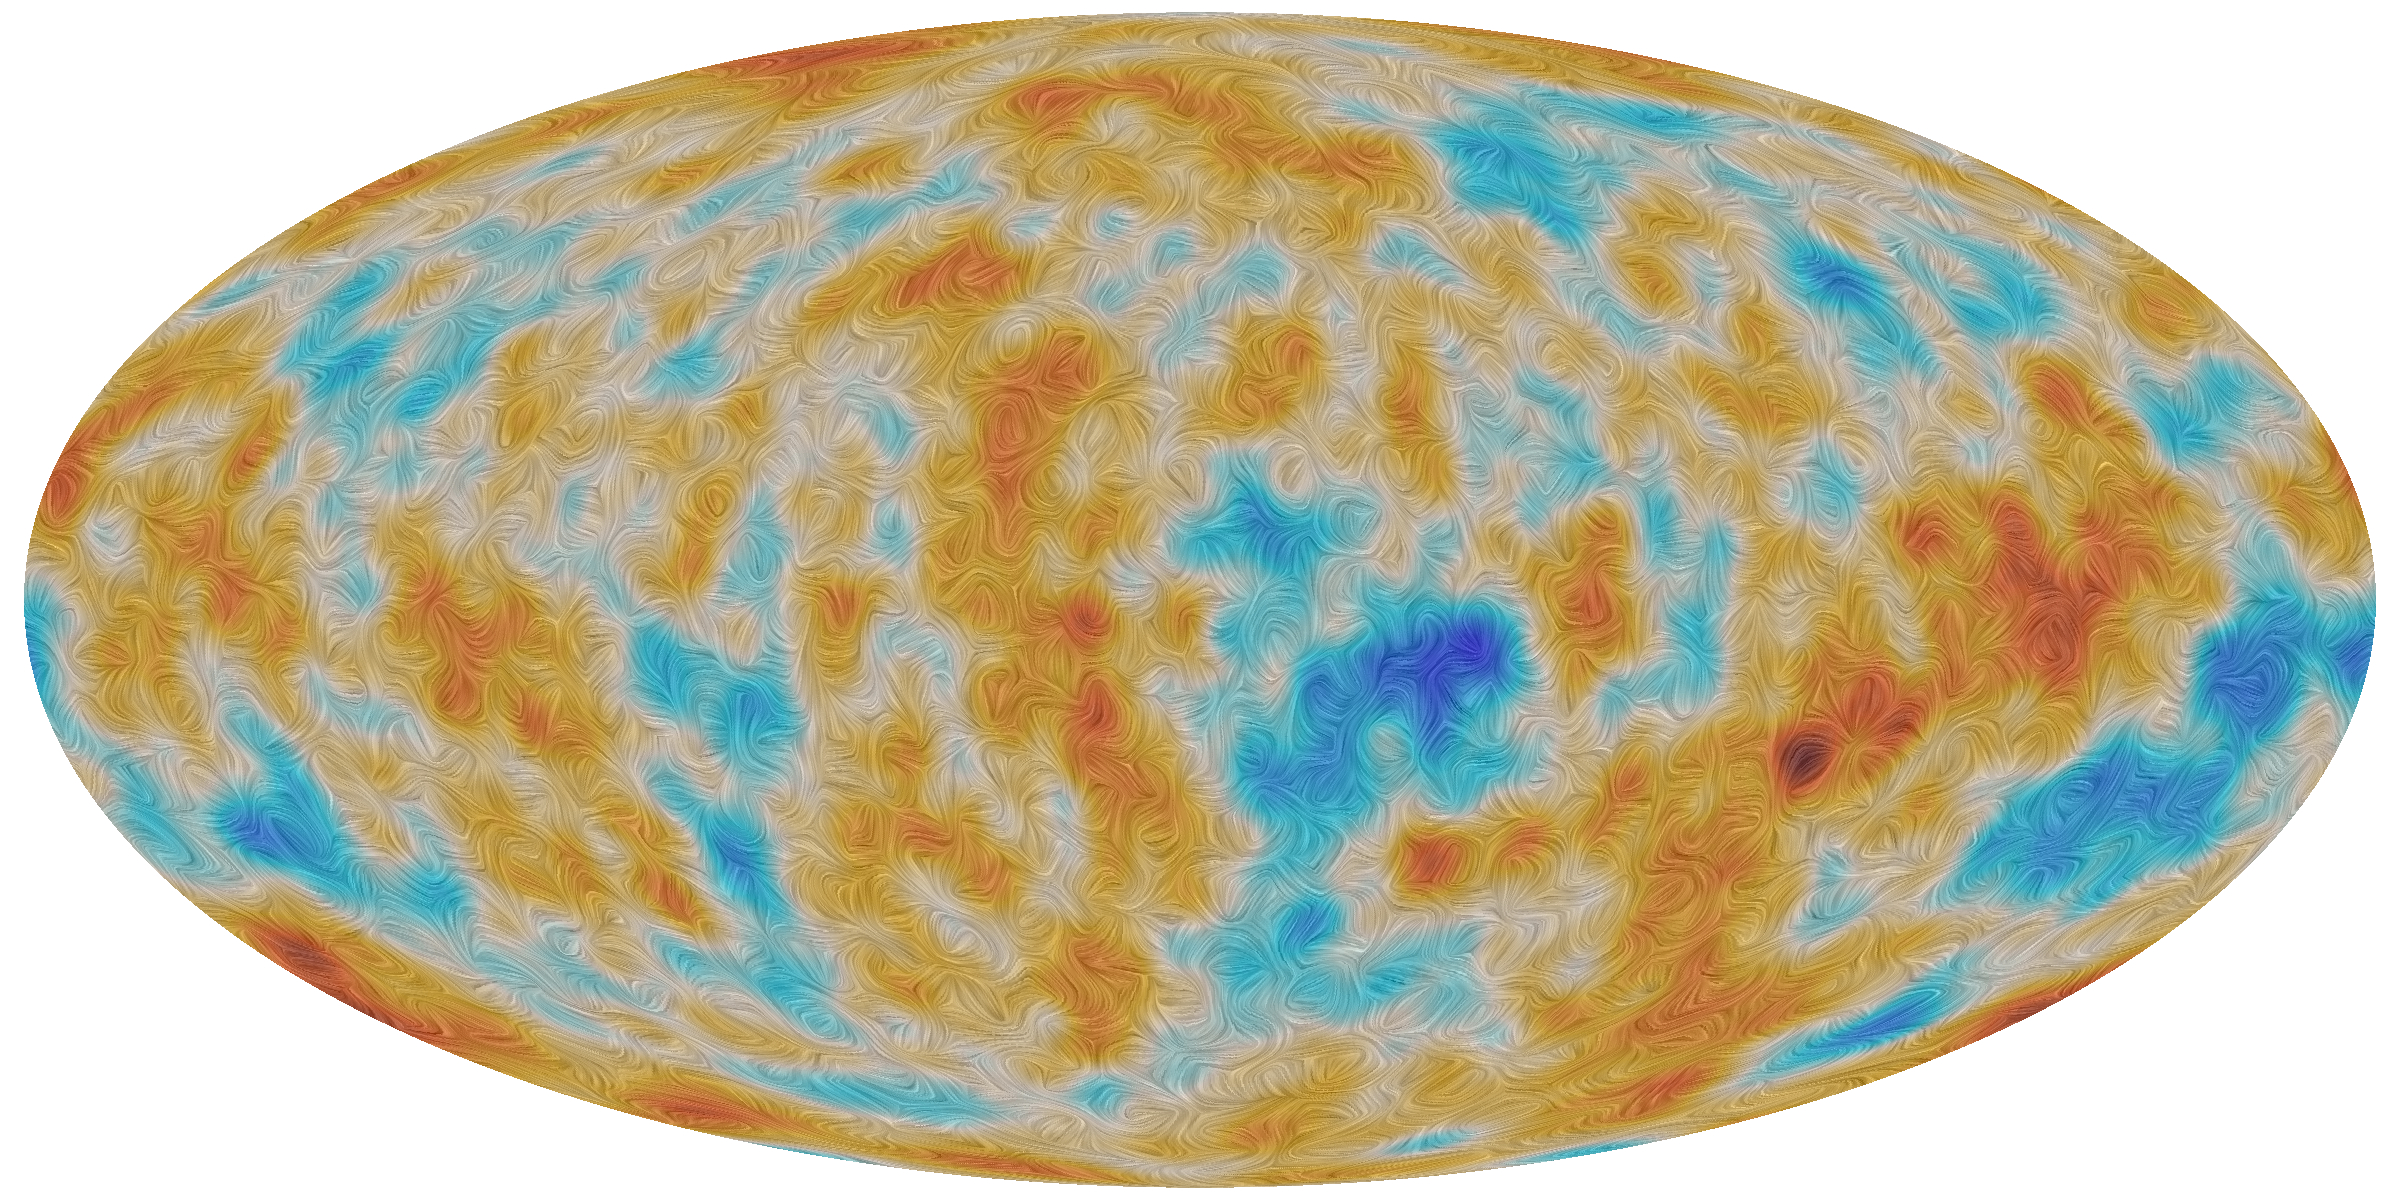 Image - A visualization of the polarization of the Cosmic Microwave Background, or CMB, as detected by ESA's Planck satellite over the entire sky. A small fraction of the CMB is polarized, meaning it vibrates in a preferred direction. In this image, the color scale represents temperature differences in the universe's cosmic microwave background, while the texture indicates the direction of the polarized light. (Credit: ESA and the Planck Collaboration)